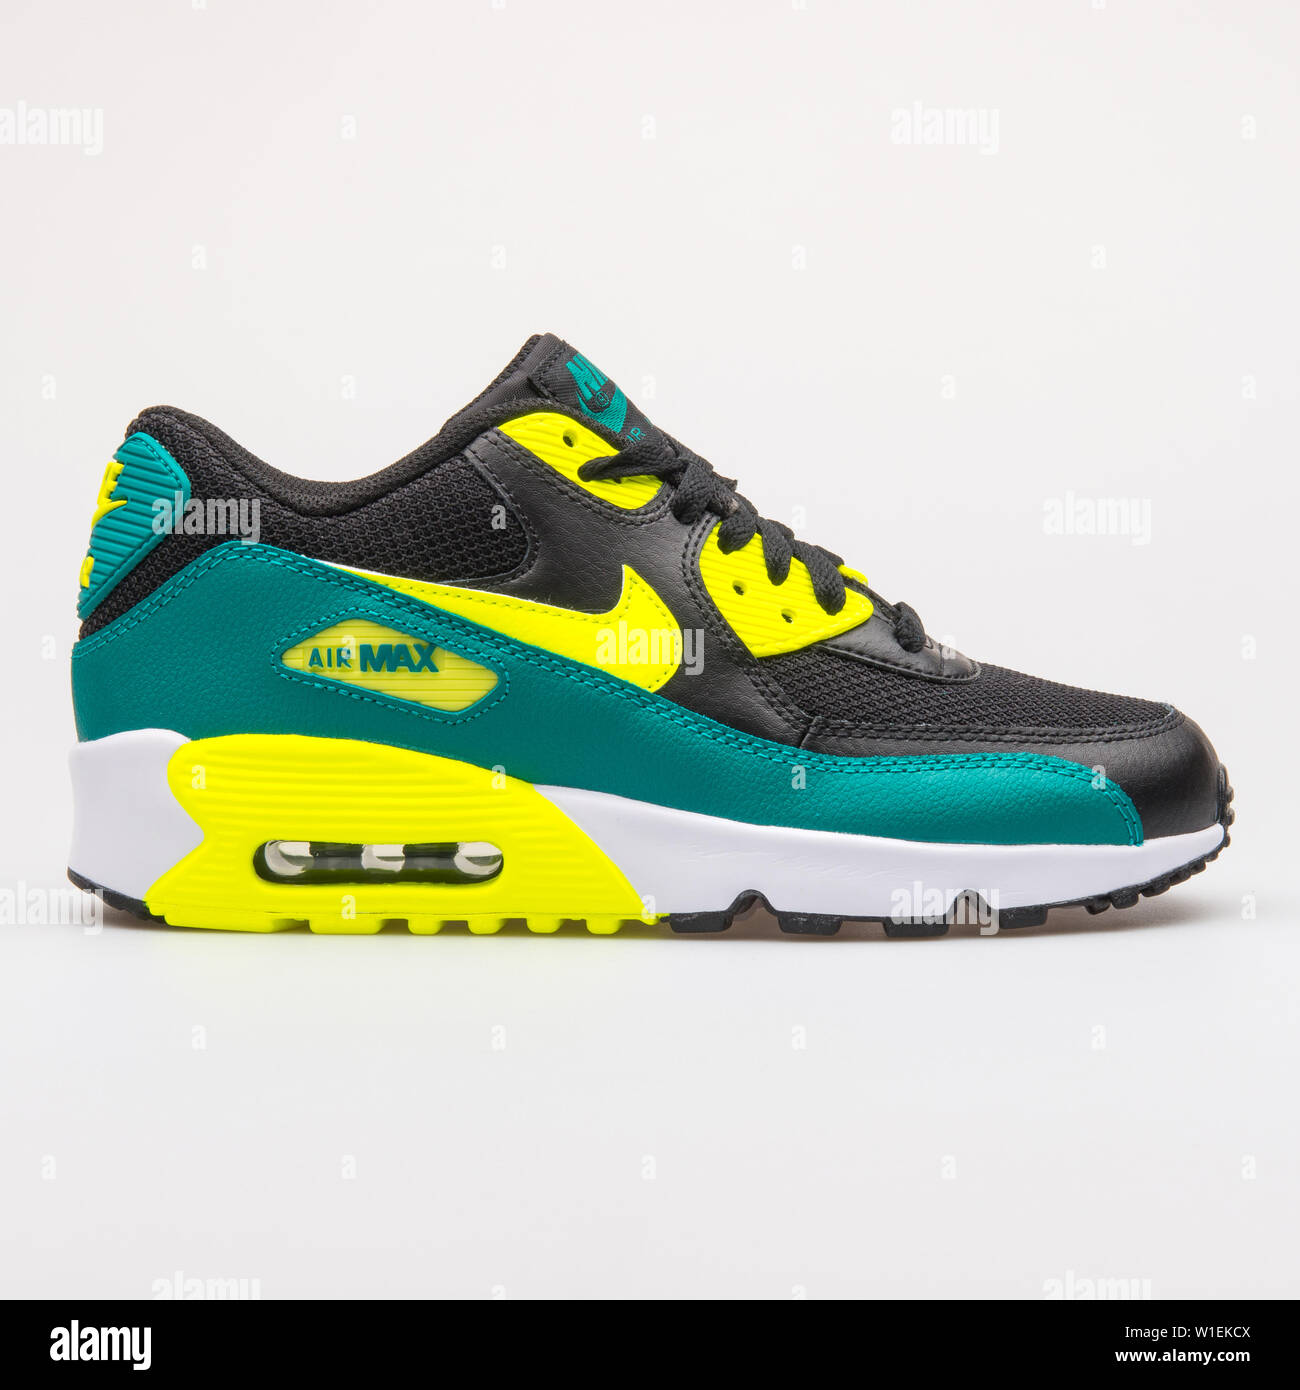 VIENNA, AUSTRIA AUGUST 28, 2017: Nike Air Max 90 Mesh